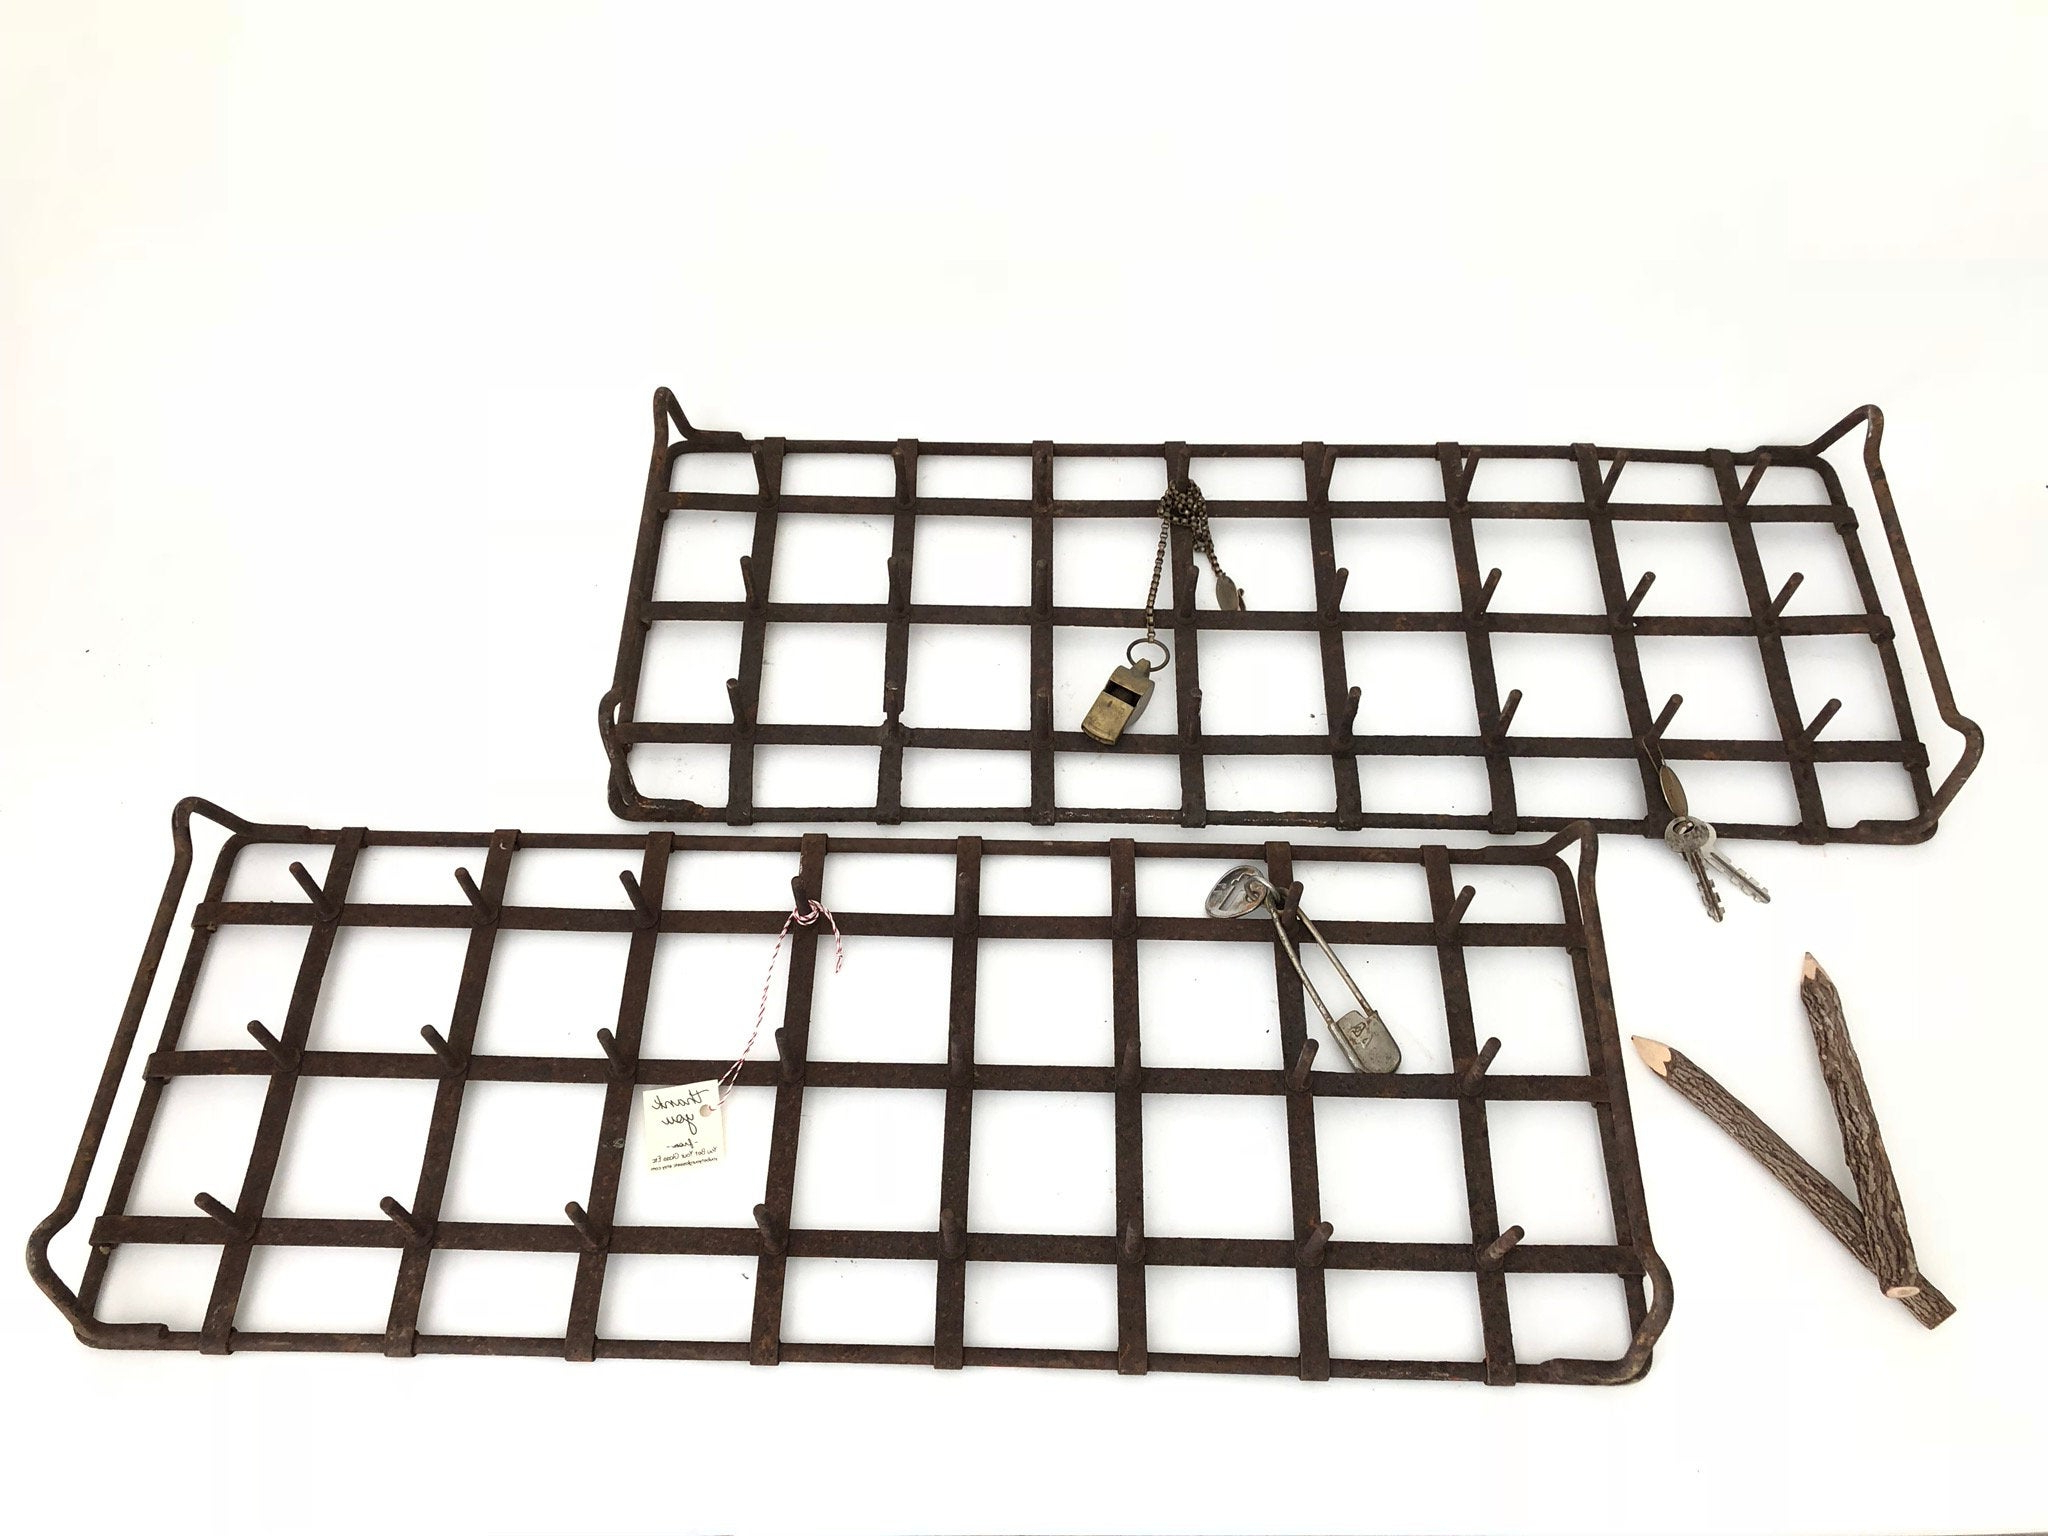 Etsy Regarding Farm Metal Wall Rack And 3 Tin Pot With Hanger Wall Decor (View 18 of 20)